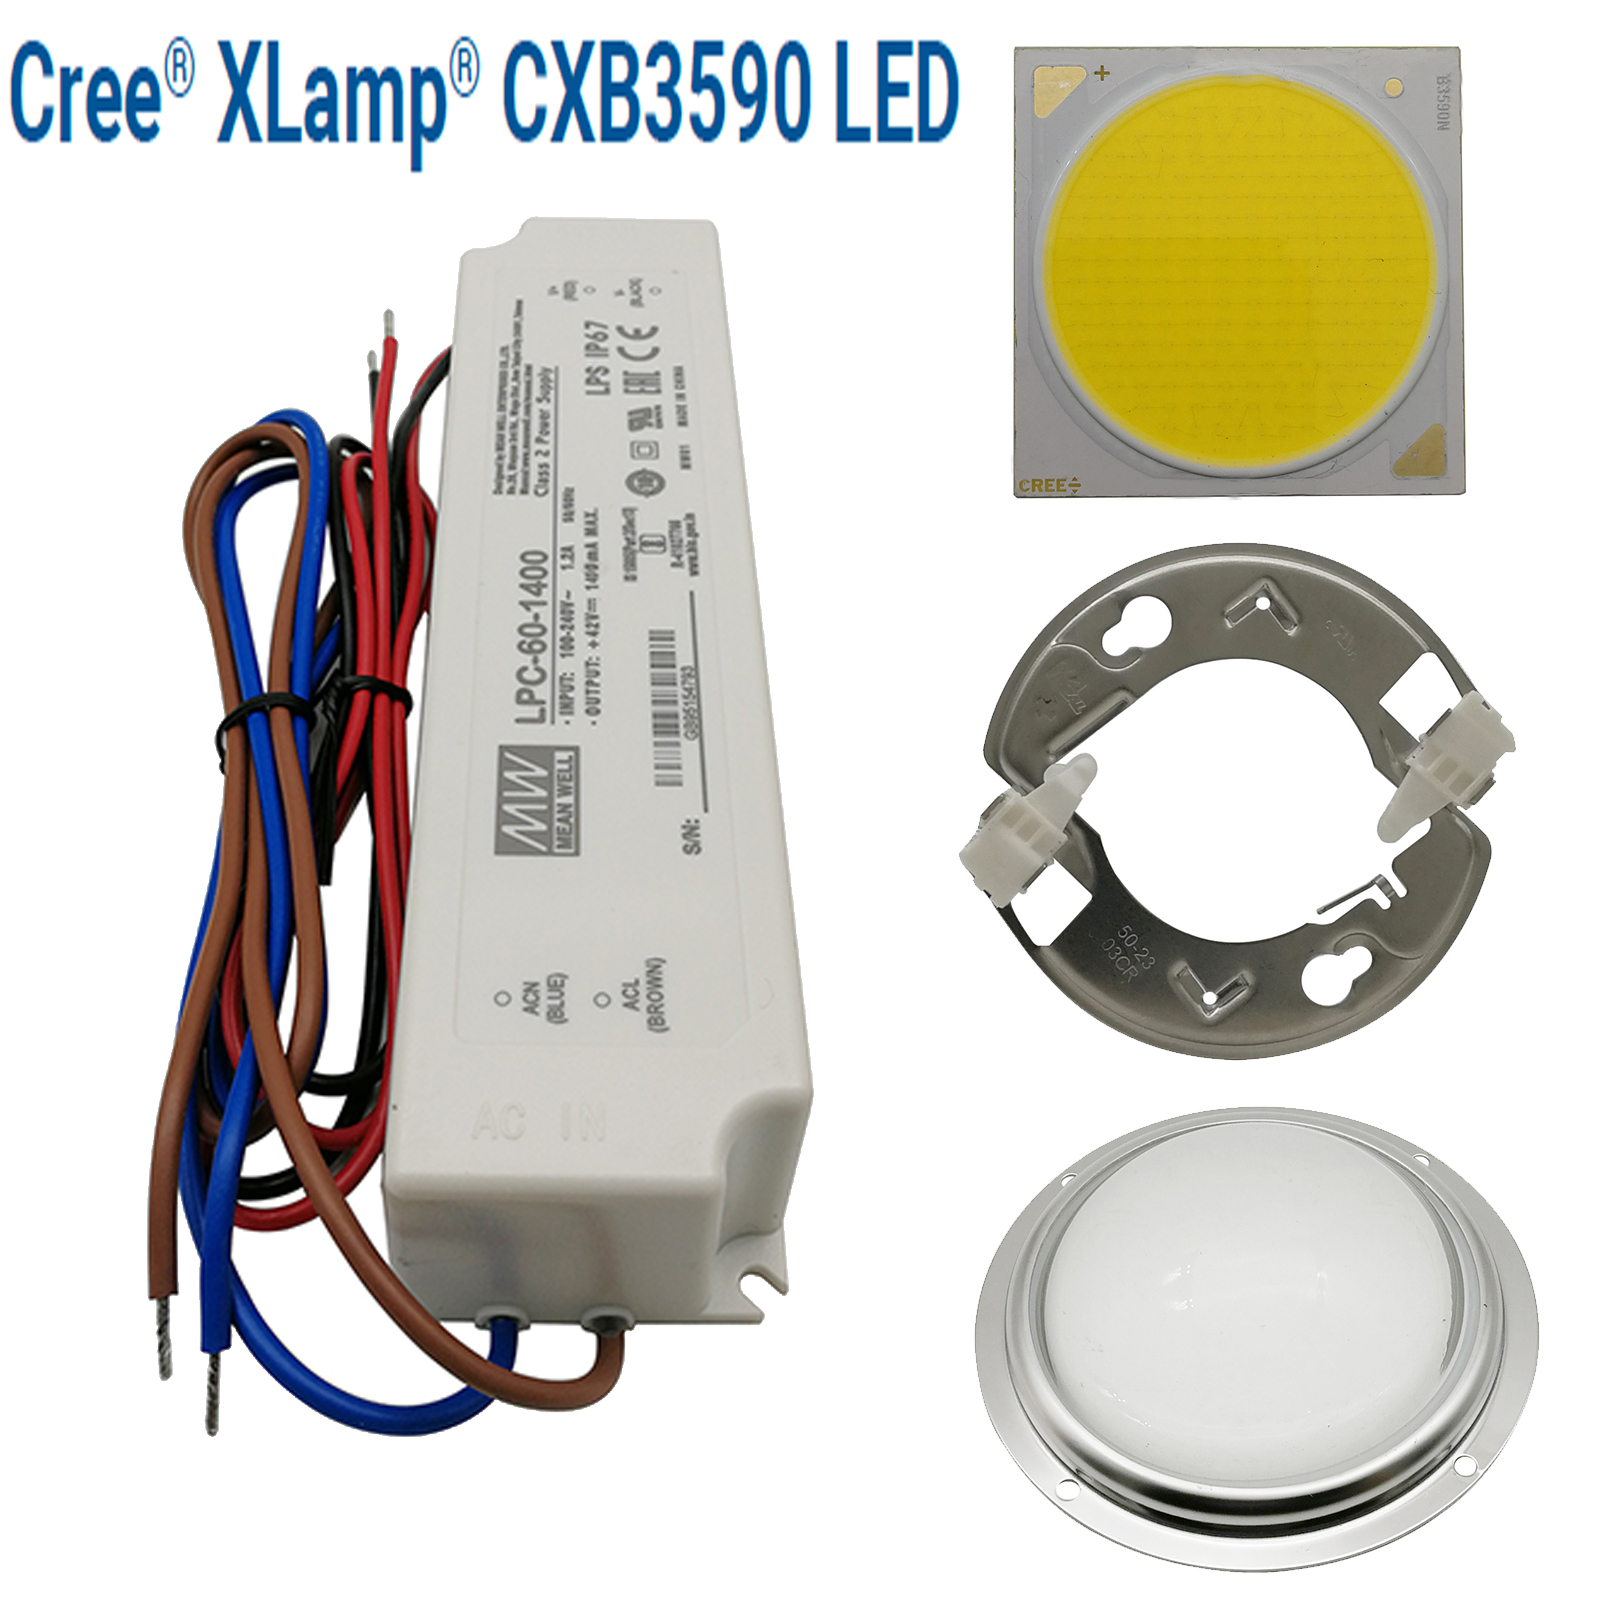 CREE CXB3590 COB LED Grow Light DIY Module LED Array Grow Lamp Indoor Plant Ideal Steel Holder MEANWELL Driver 100mm Glass Lens